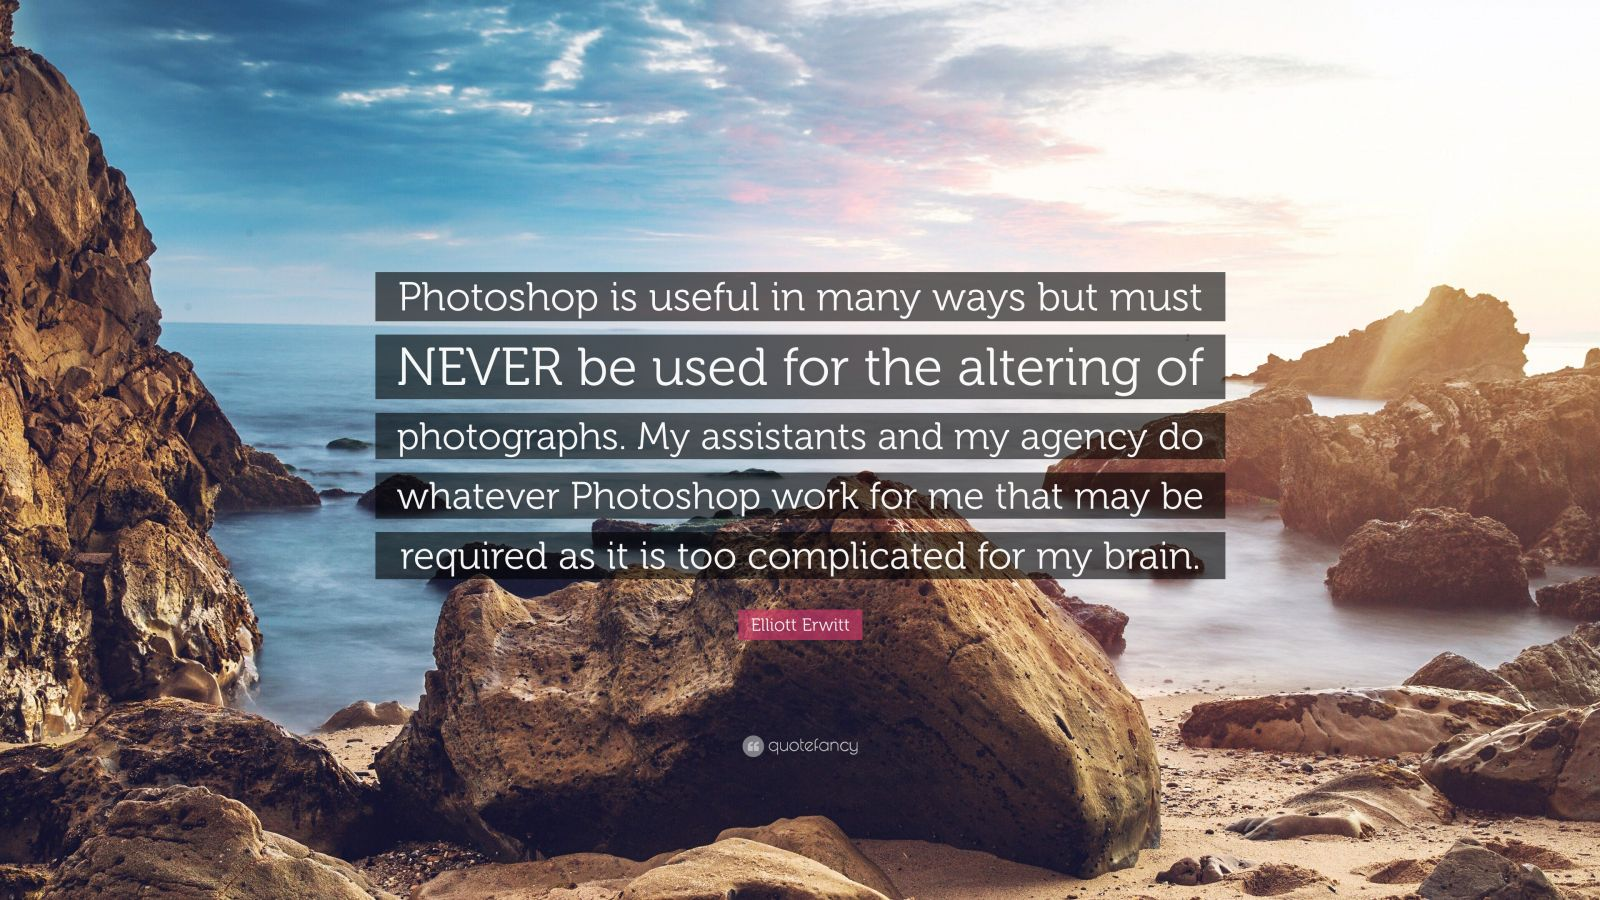 """Elliott Erwitt Quote: """"Photoshop is useful in many ways but must NEVER be used for the altering of photographs. My assistants and my agency do whatever Photoshop work for me that may be required as it is too complicated for my brain."""""""